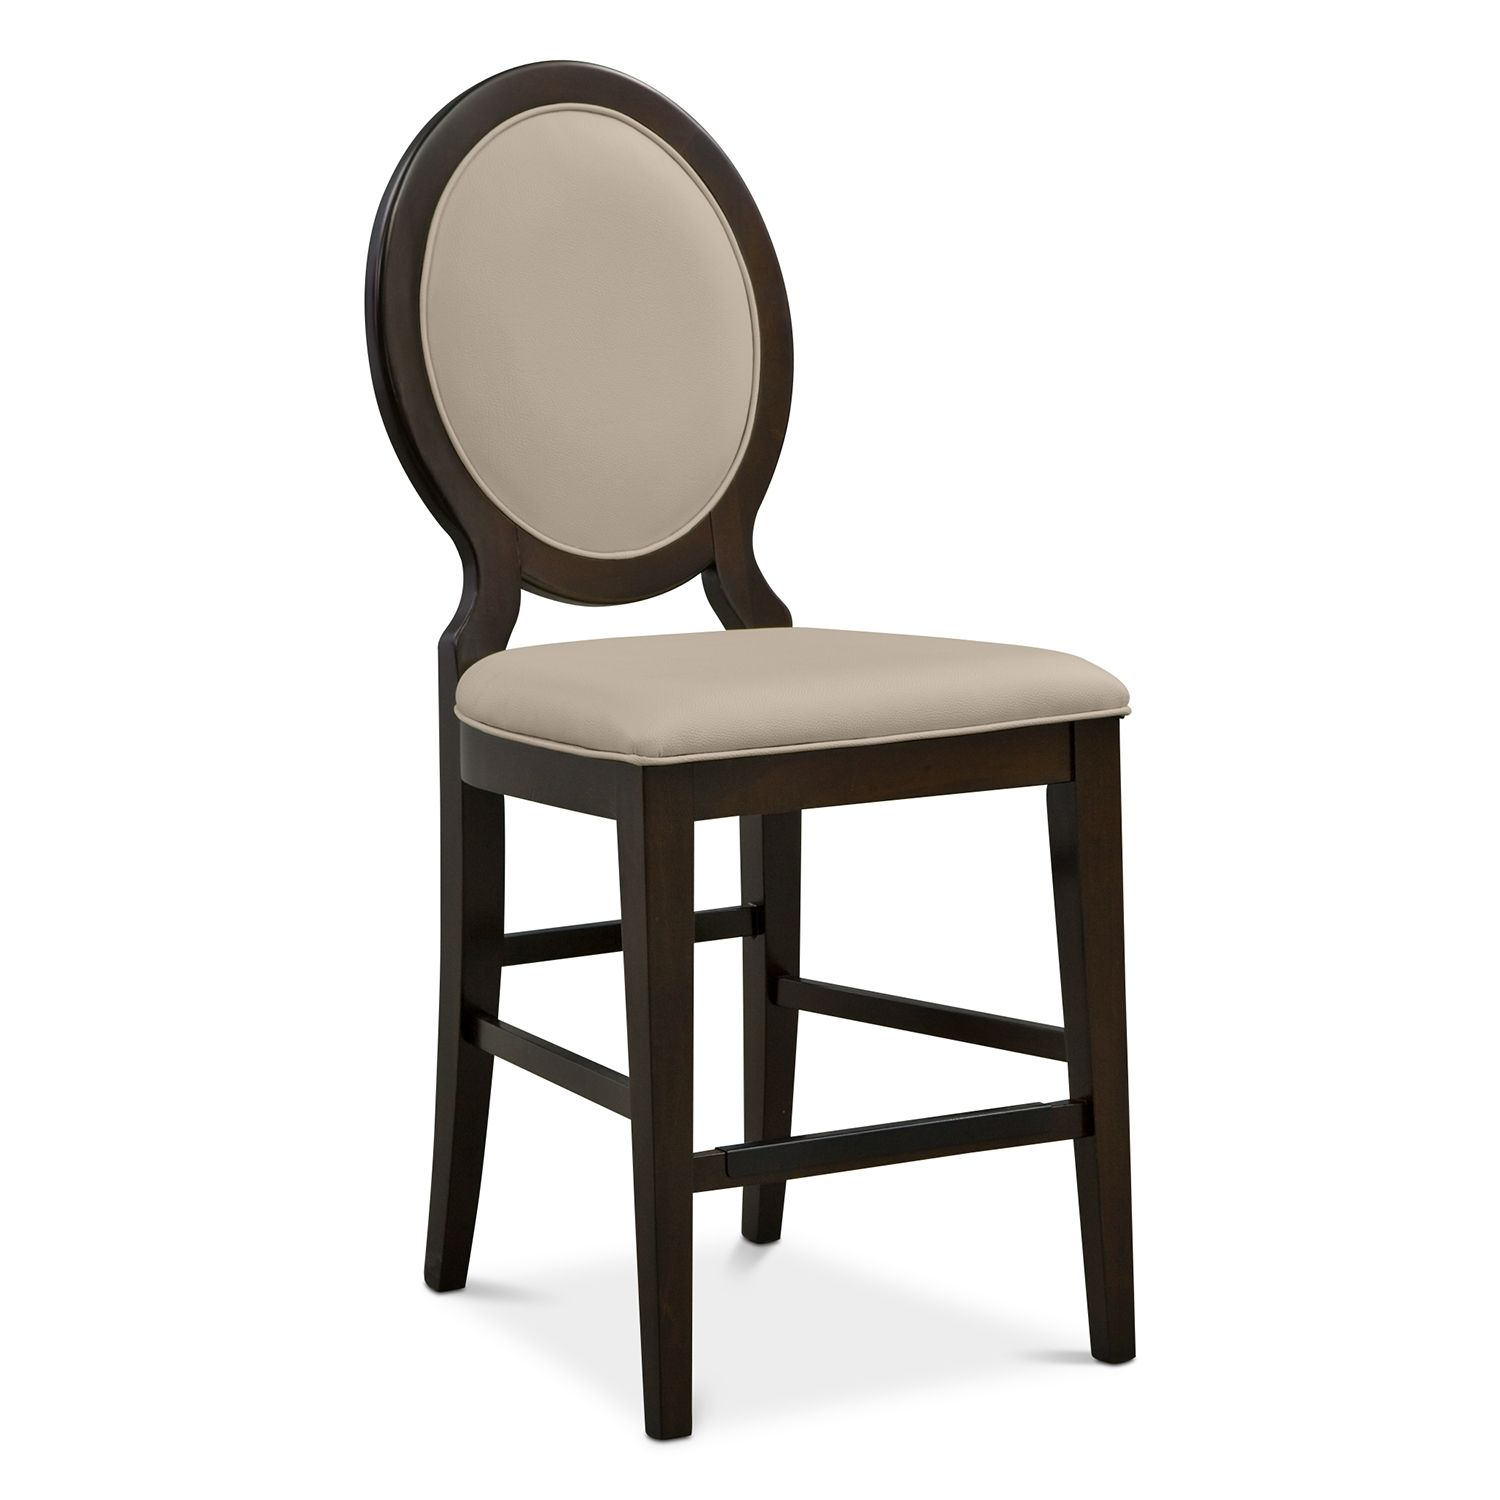 Barhocker Küche Rot Cosmo Ii Dining Room Counter-height Stool - Value City Furniture $180 | Barhocker, Skandinavisches Interieur, Hocker